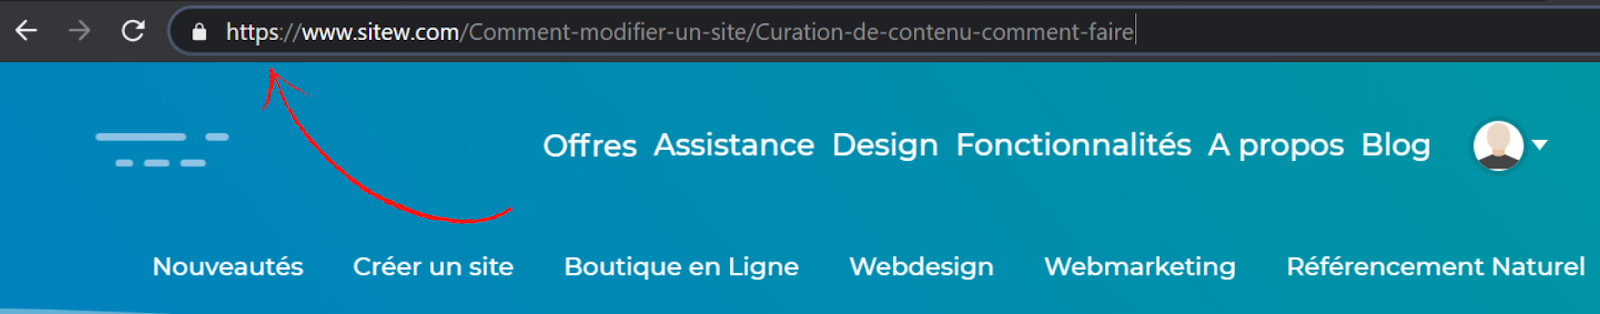 exemple protocole https sitew